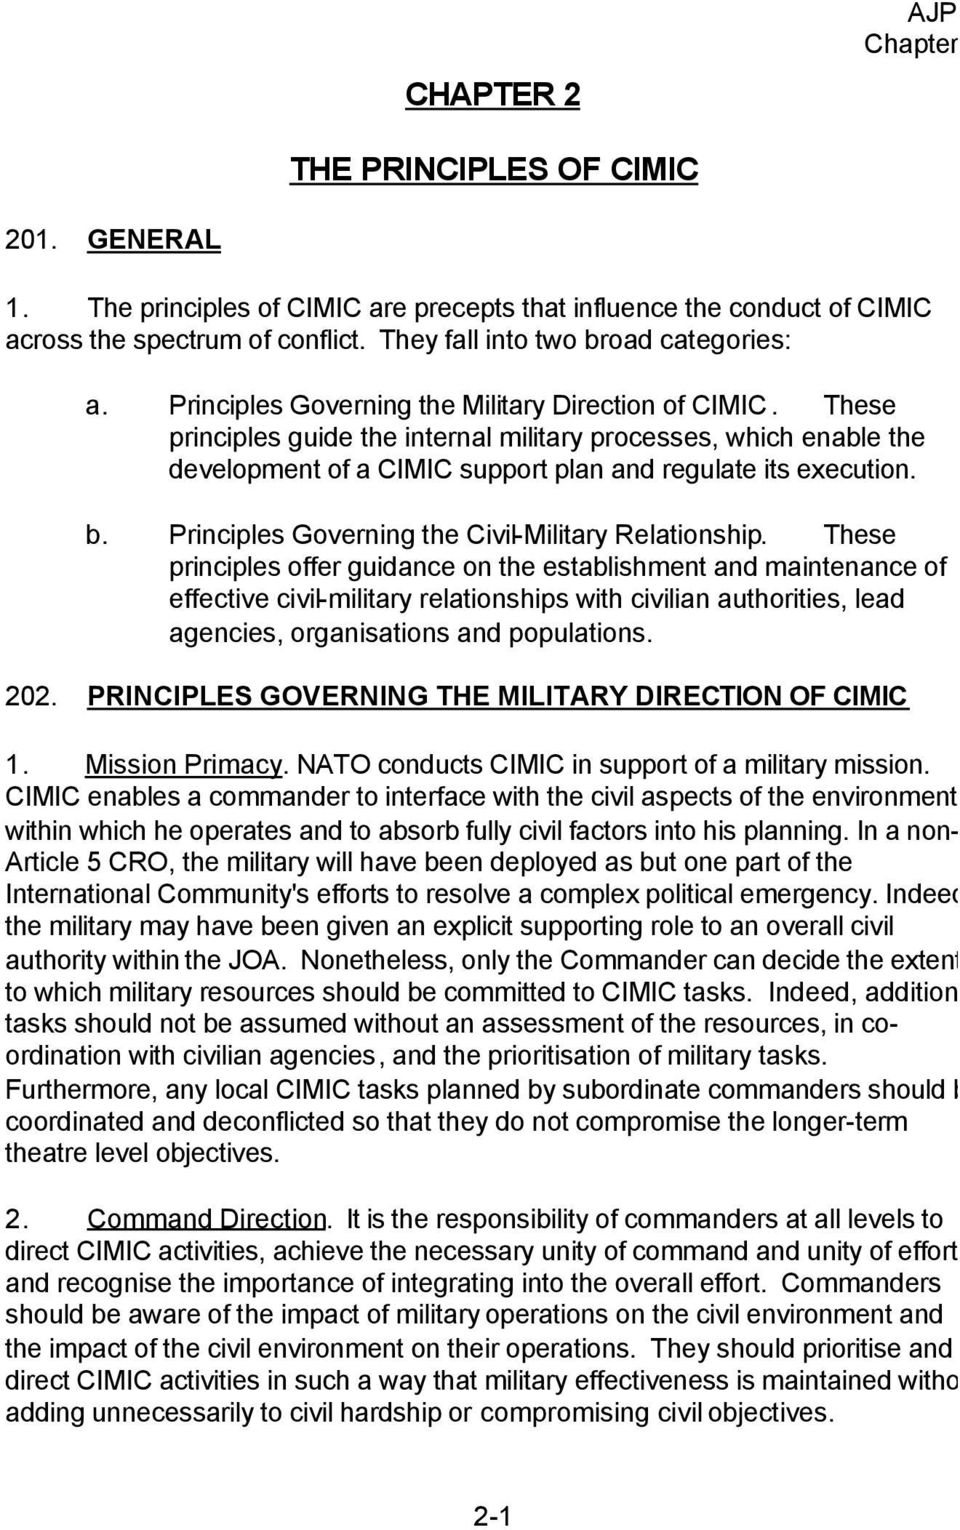 These principles guide the internal military processes, which enable the development of a CIMIC support plan and regulate its execution. b. Principles Governing the Civil-Military Relationship.